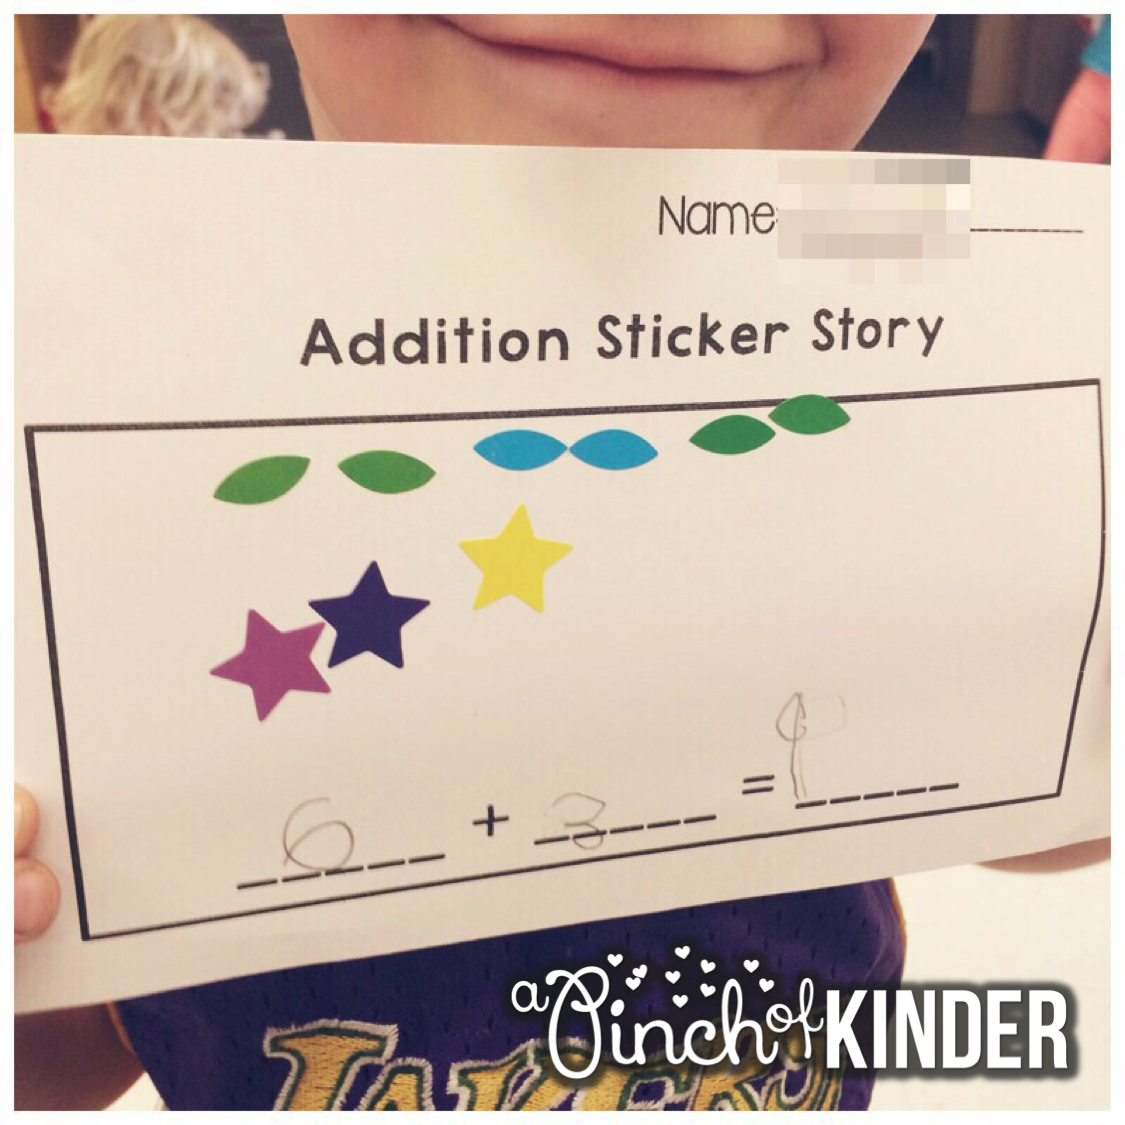 A Pinch Of Kinder Addition And Subtraction Sticker Story